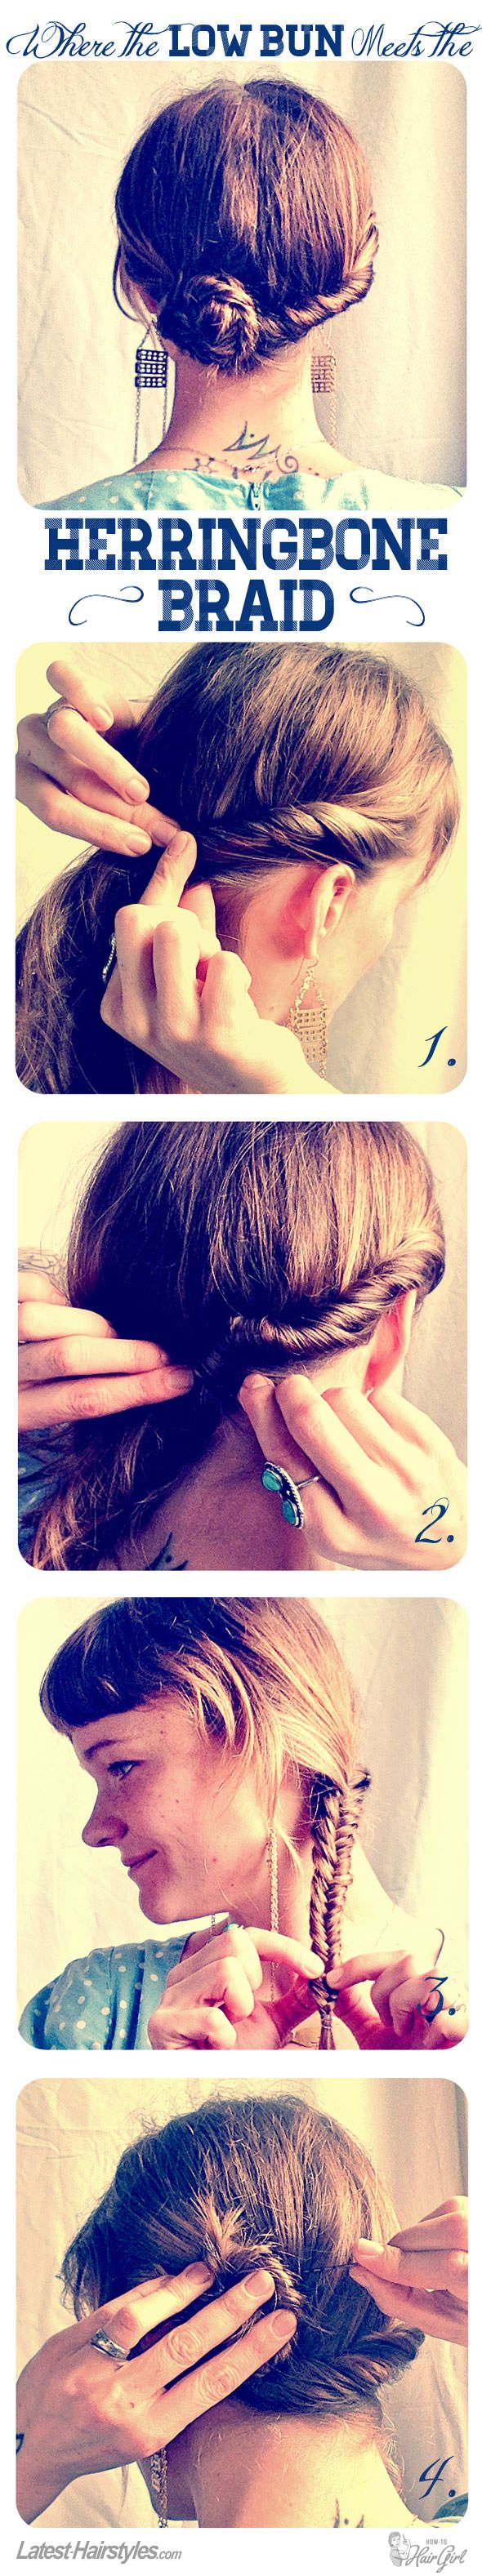 A Stunning New Hairstyle: Where the Low Bun Meets the Herringbone Braid